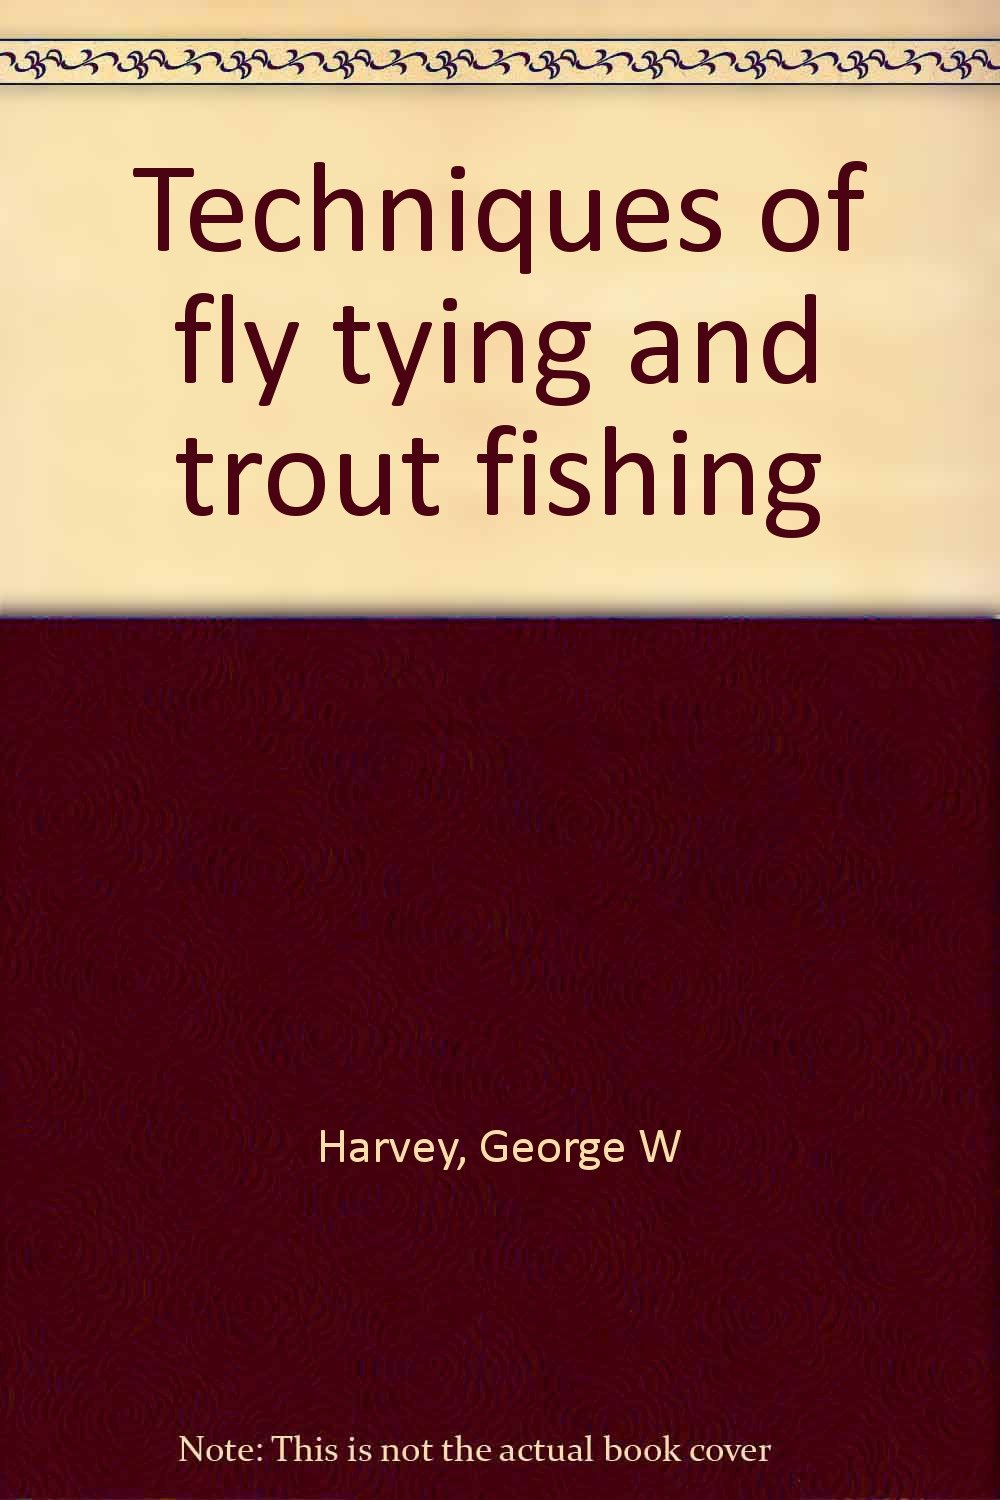 Techniques fly tying trout fishing product image